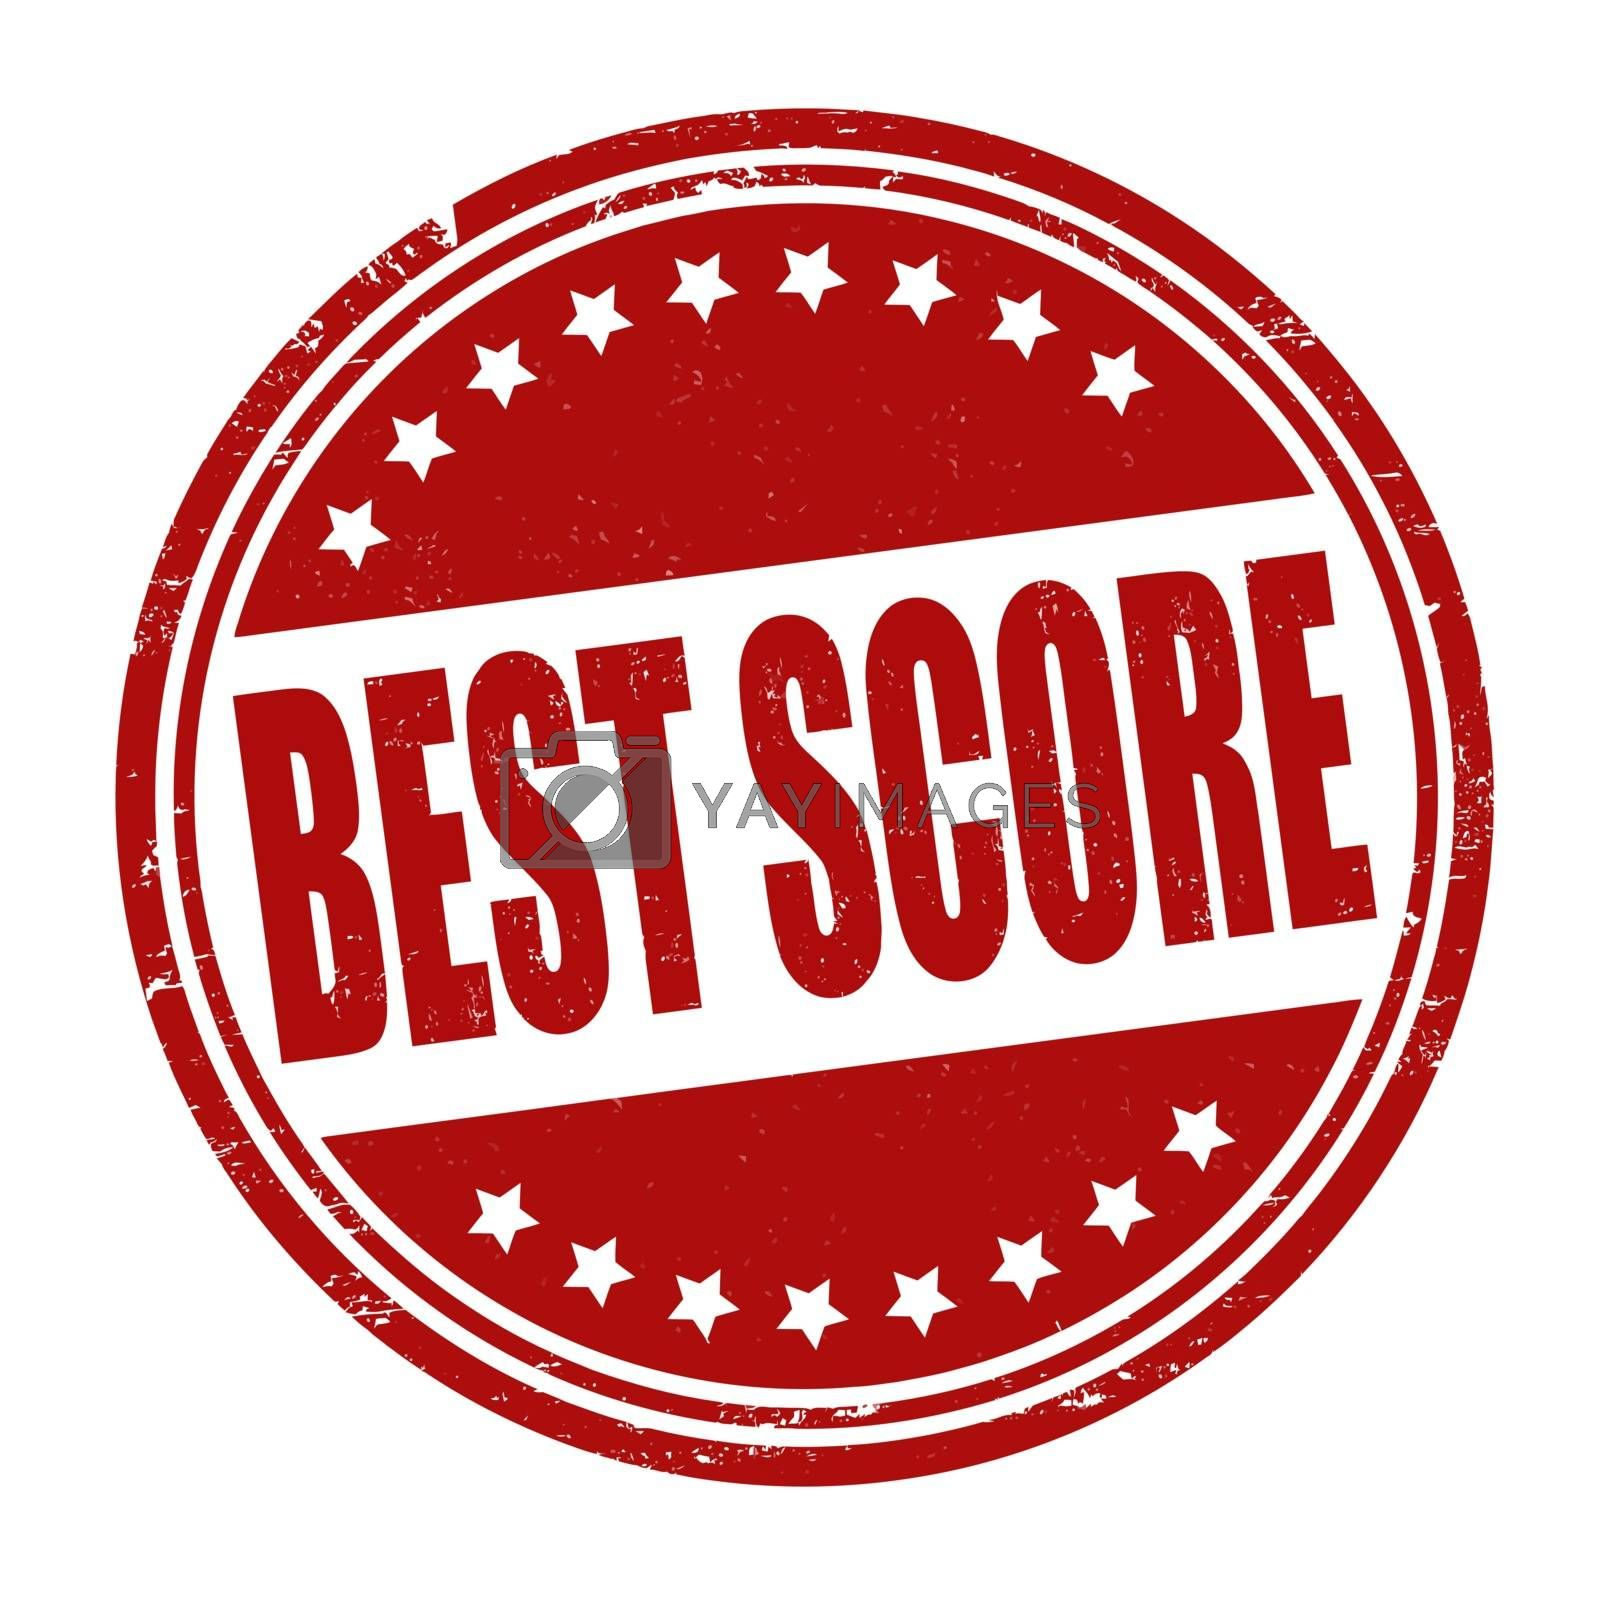 Best score stamp by roxanabalint